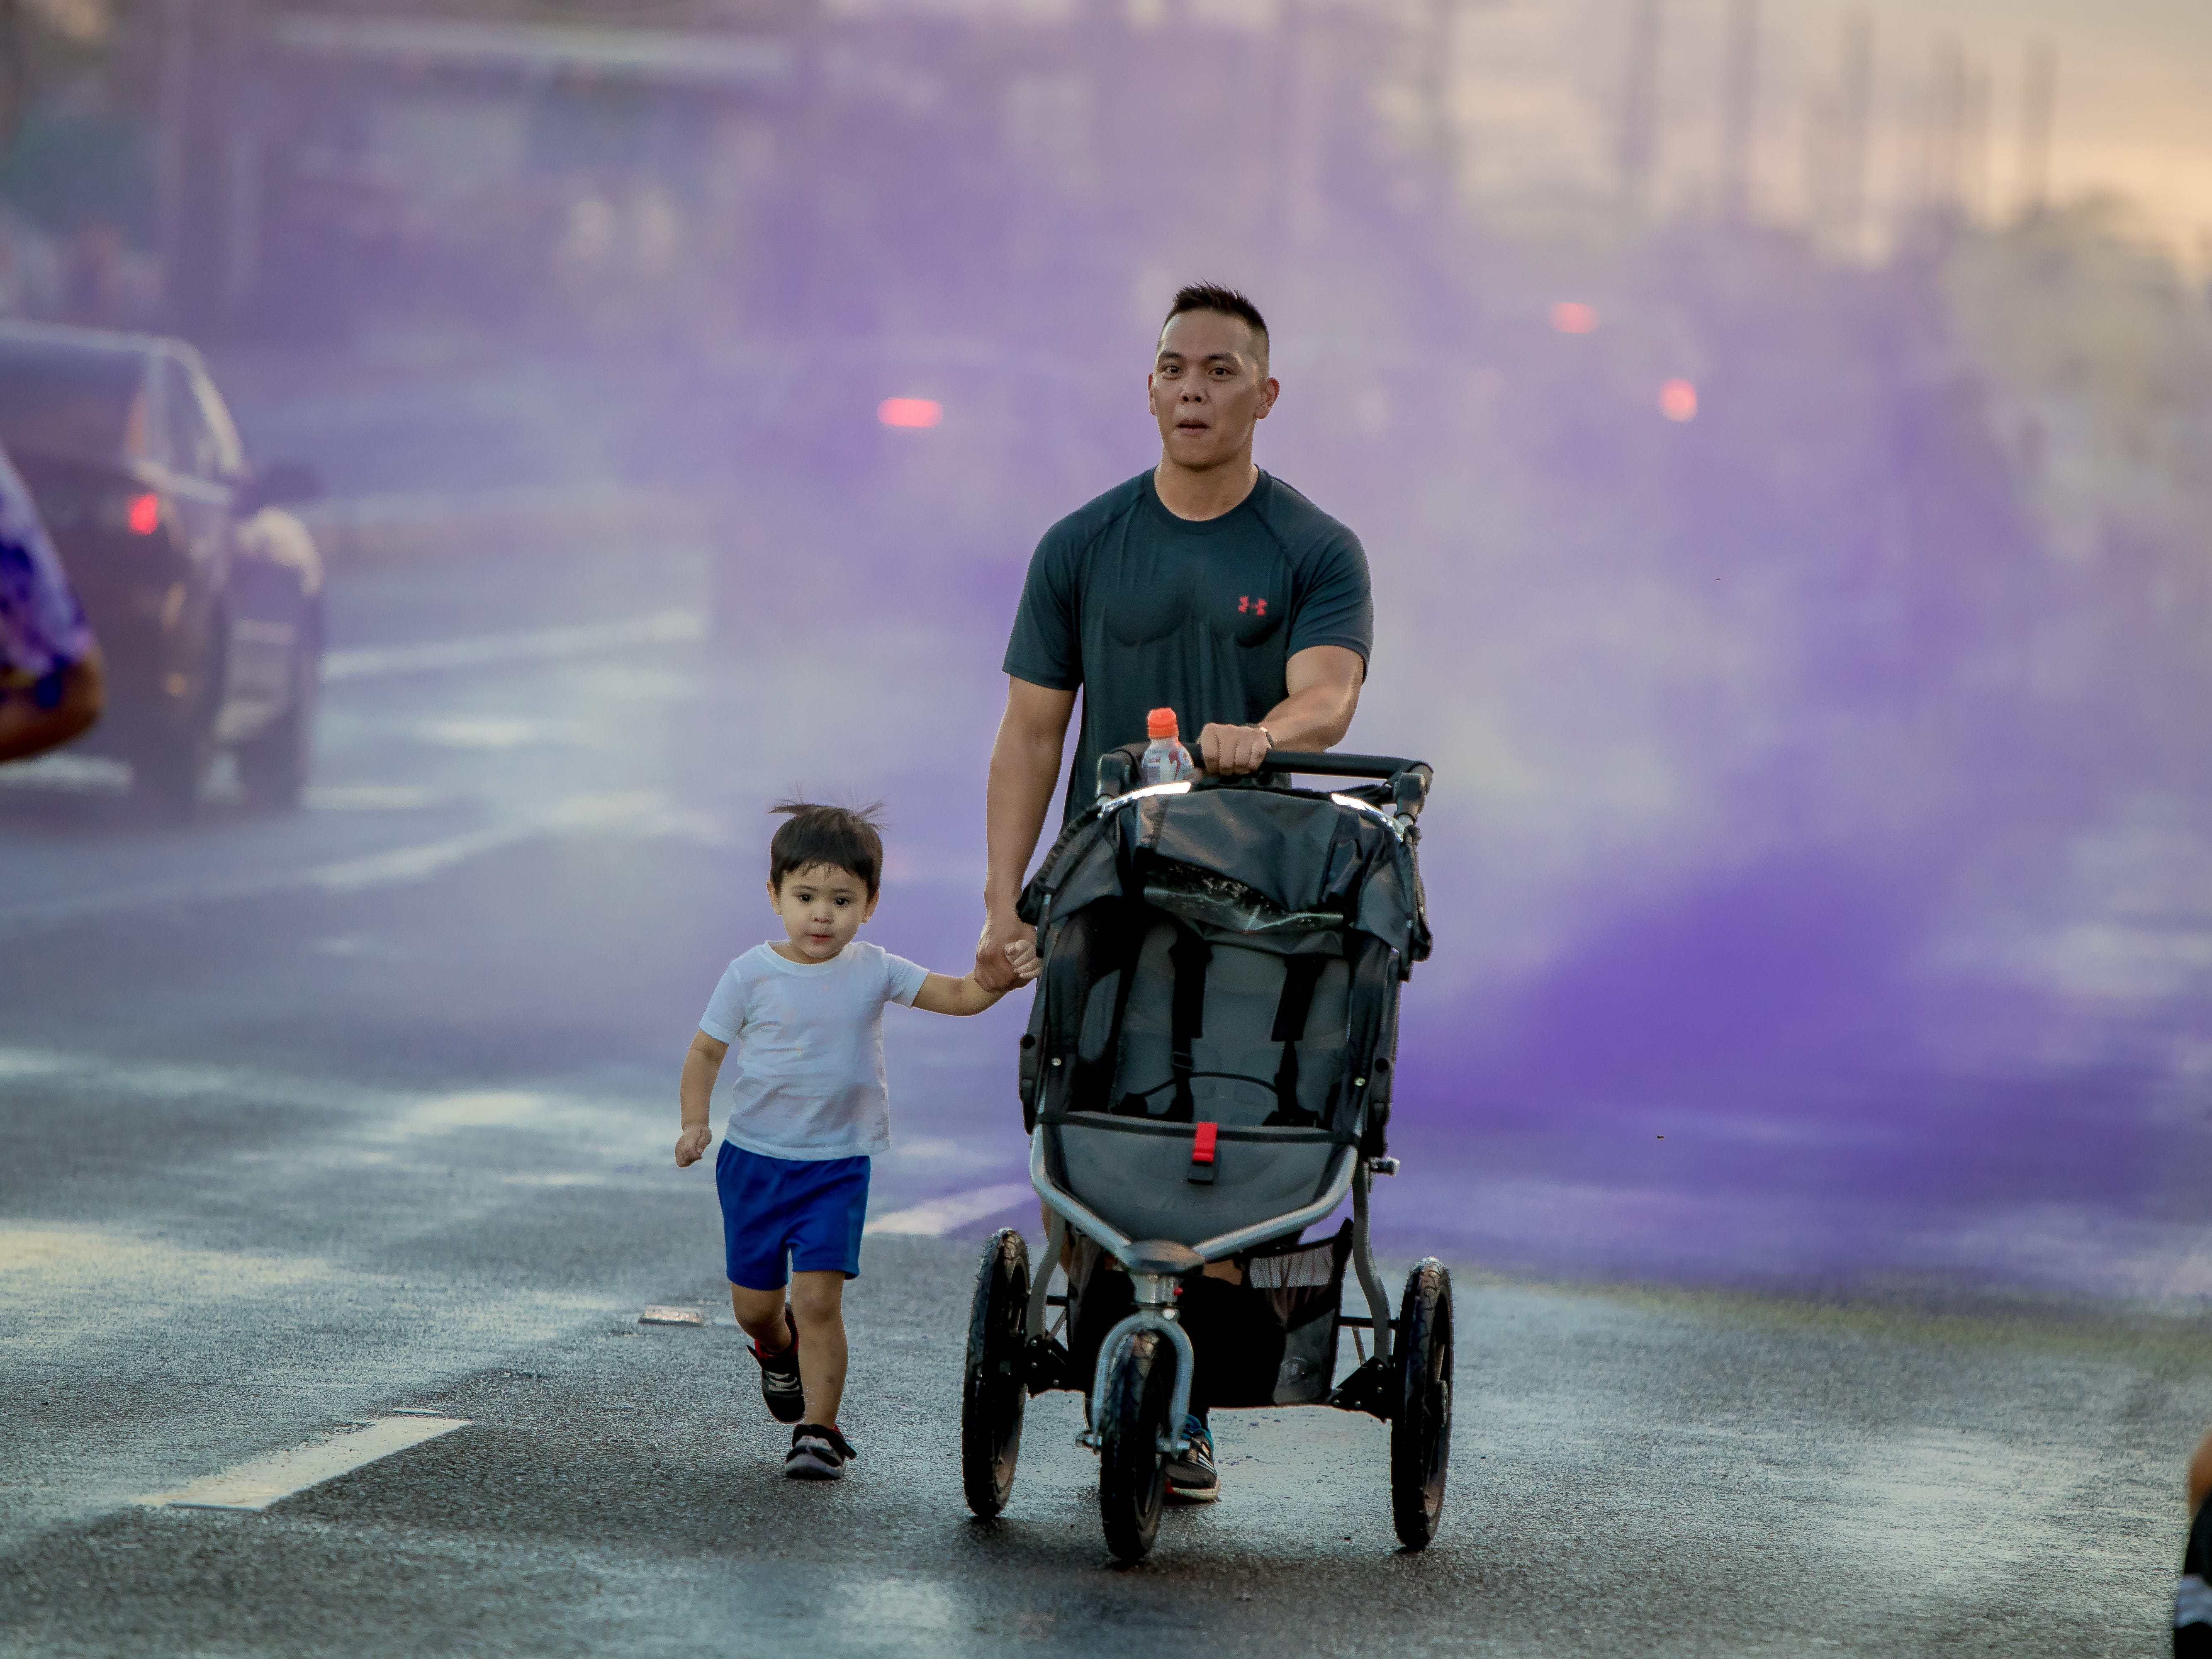 A kid gets off the stroller as they approach the finish line.Virgilio Valencia /For Pacific Daily News